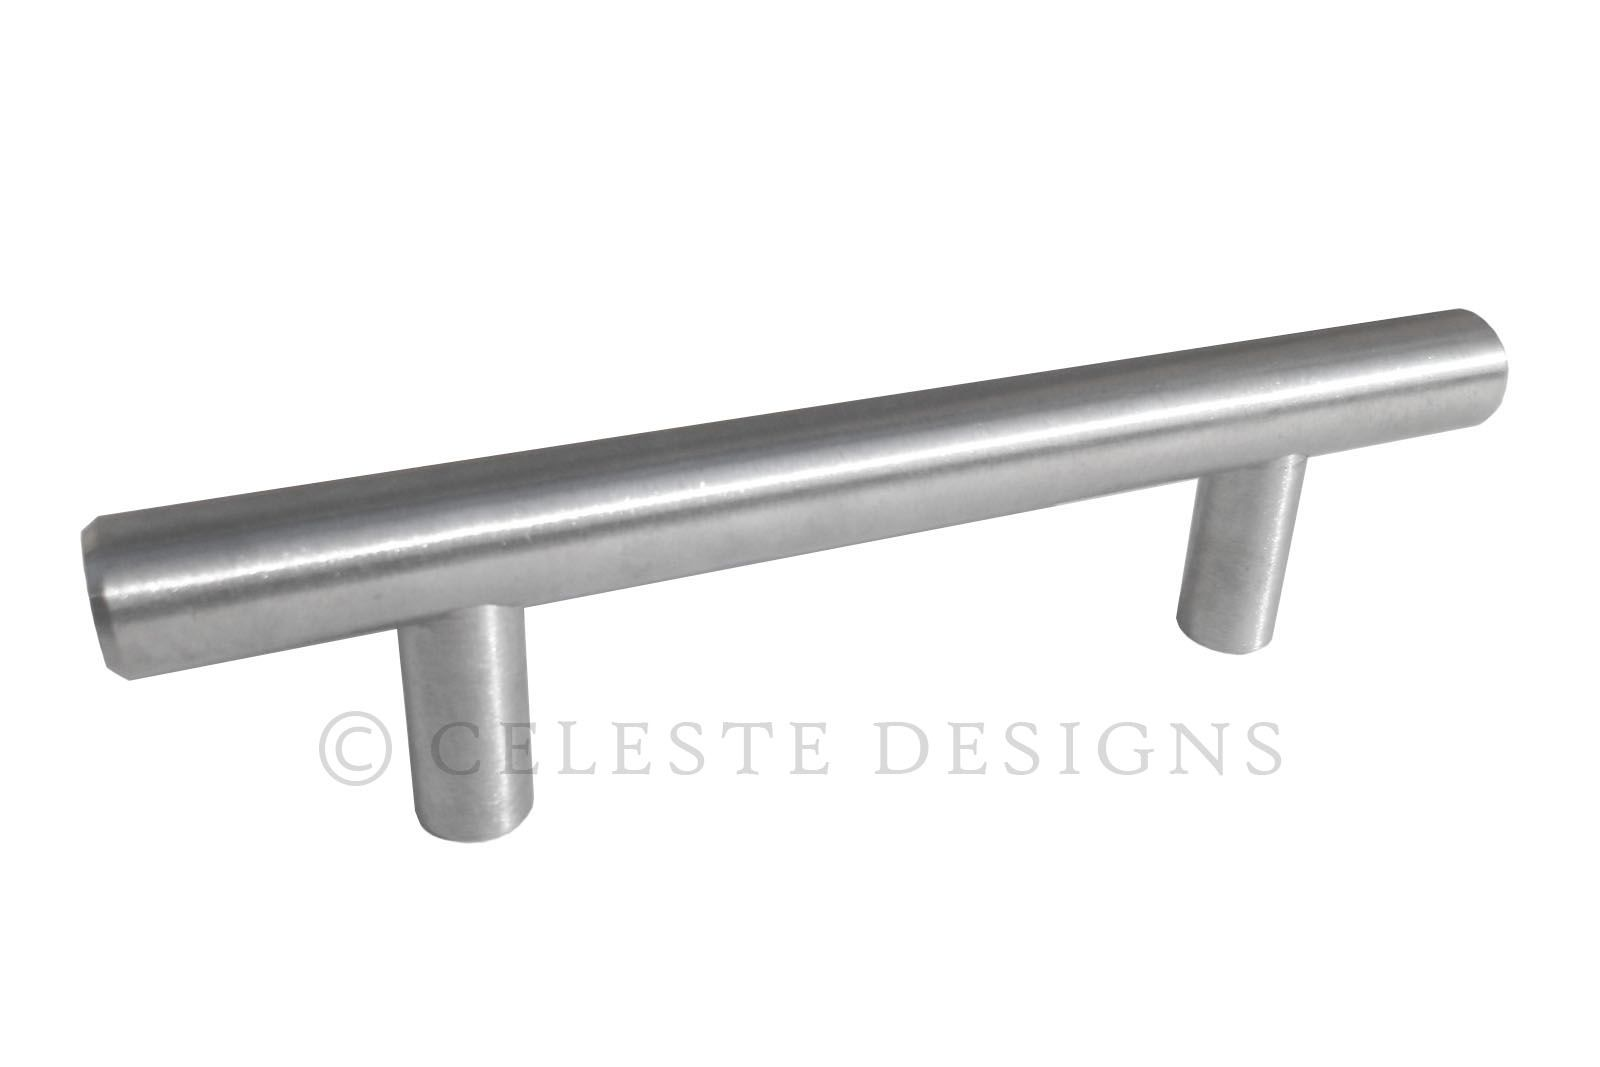 Bar Pulls Solid Stainless Steel Brushed Nickel Finish 12mm Choose Size